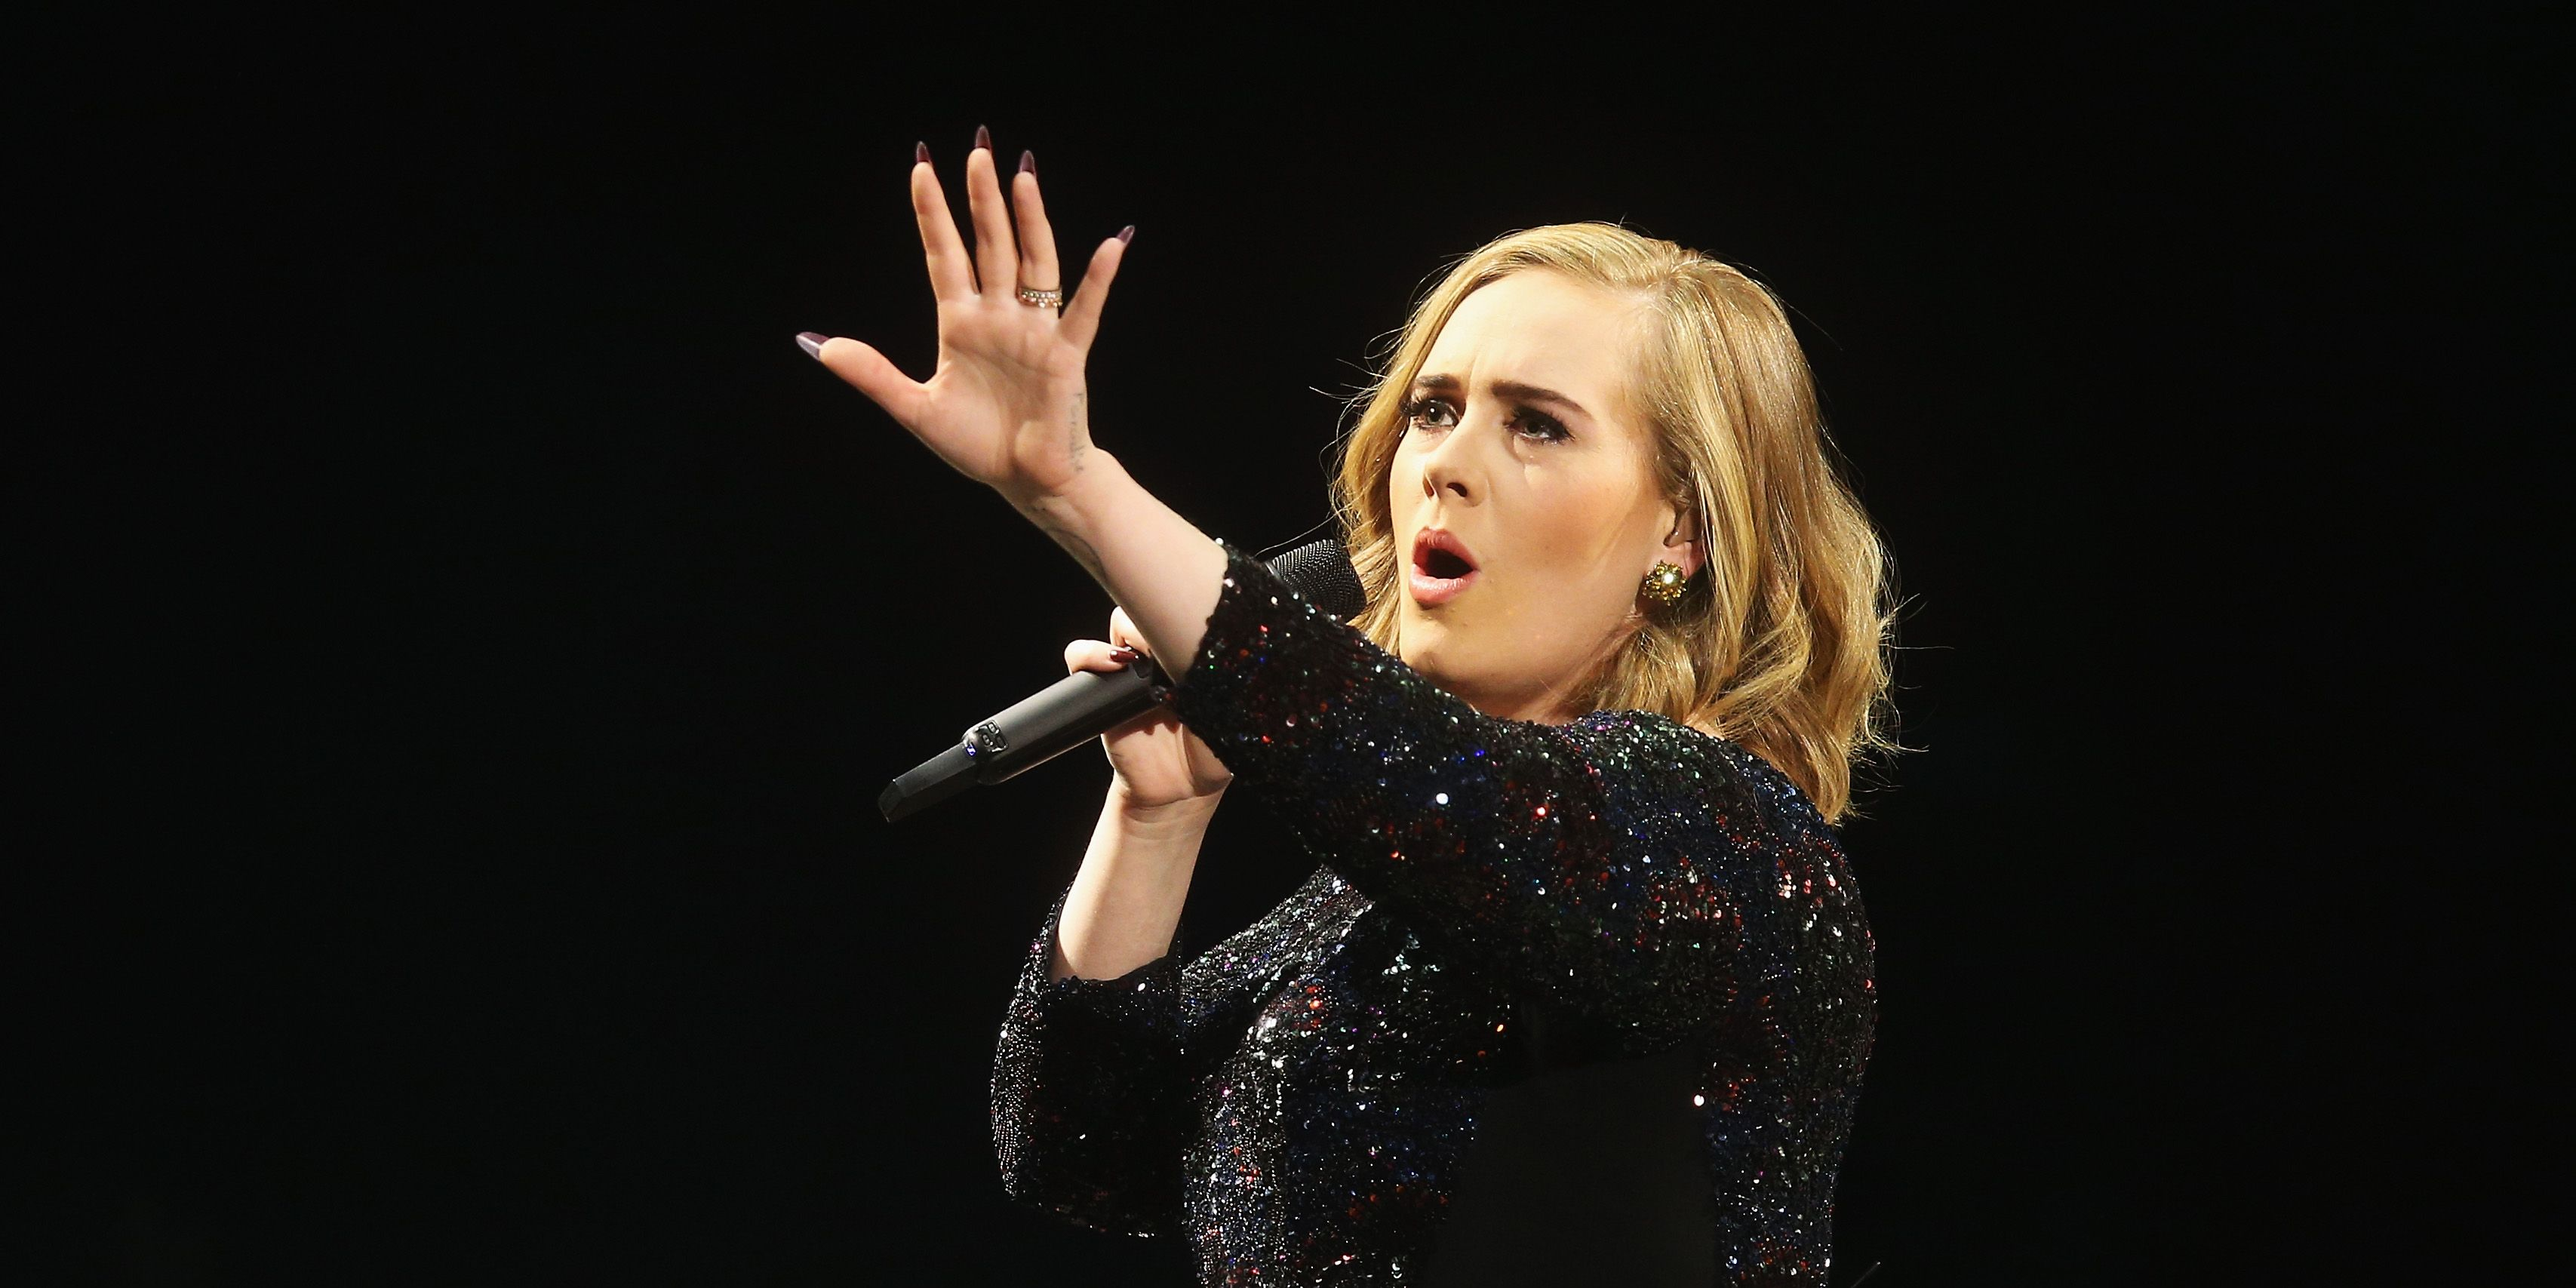 HAMBURG, GERMANY - MAY 10: Adele performs at Barclaycard Arena on May 10, 2016 in Hamburg, Germany.